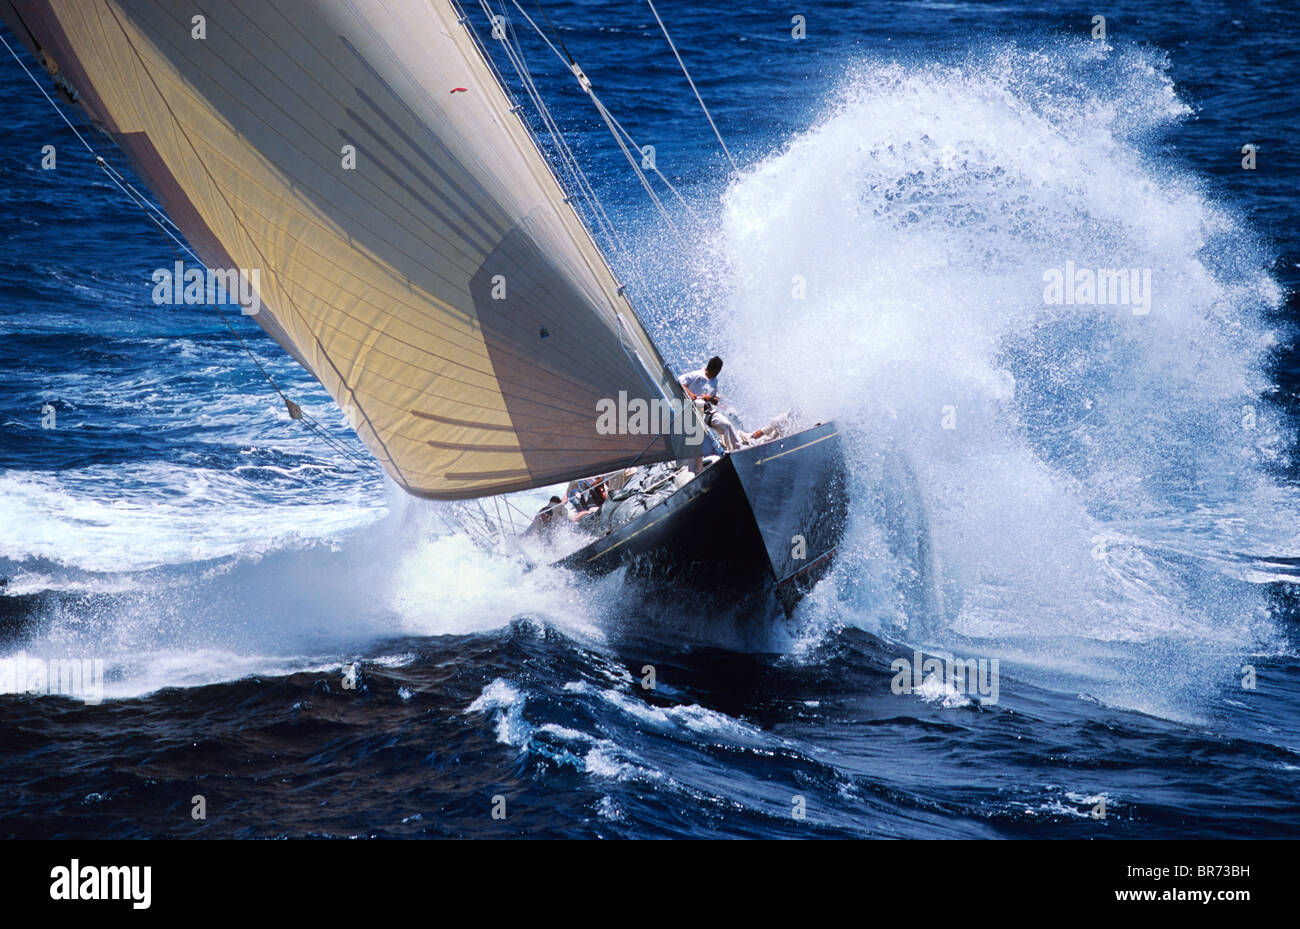 Image result for J boat antigua